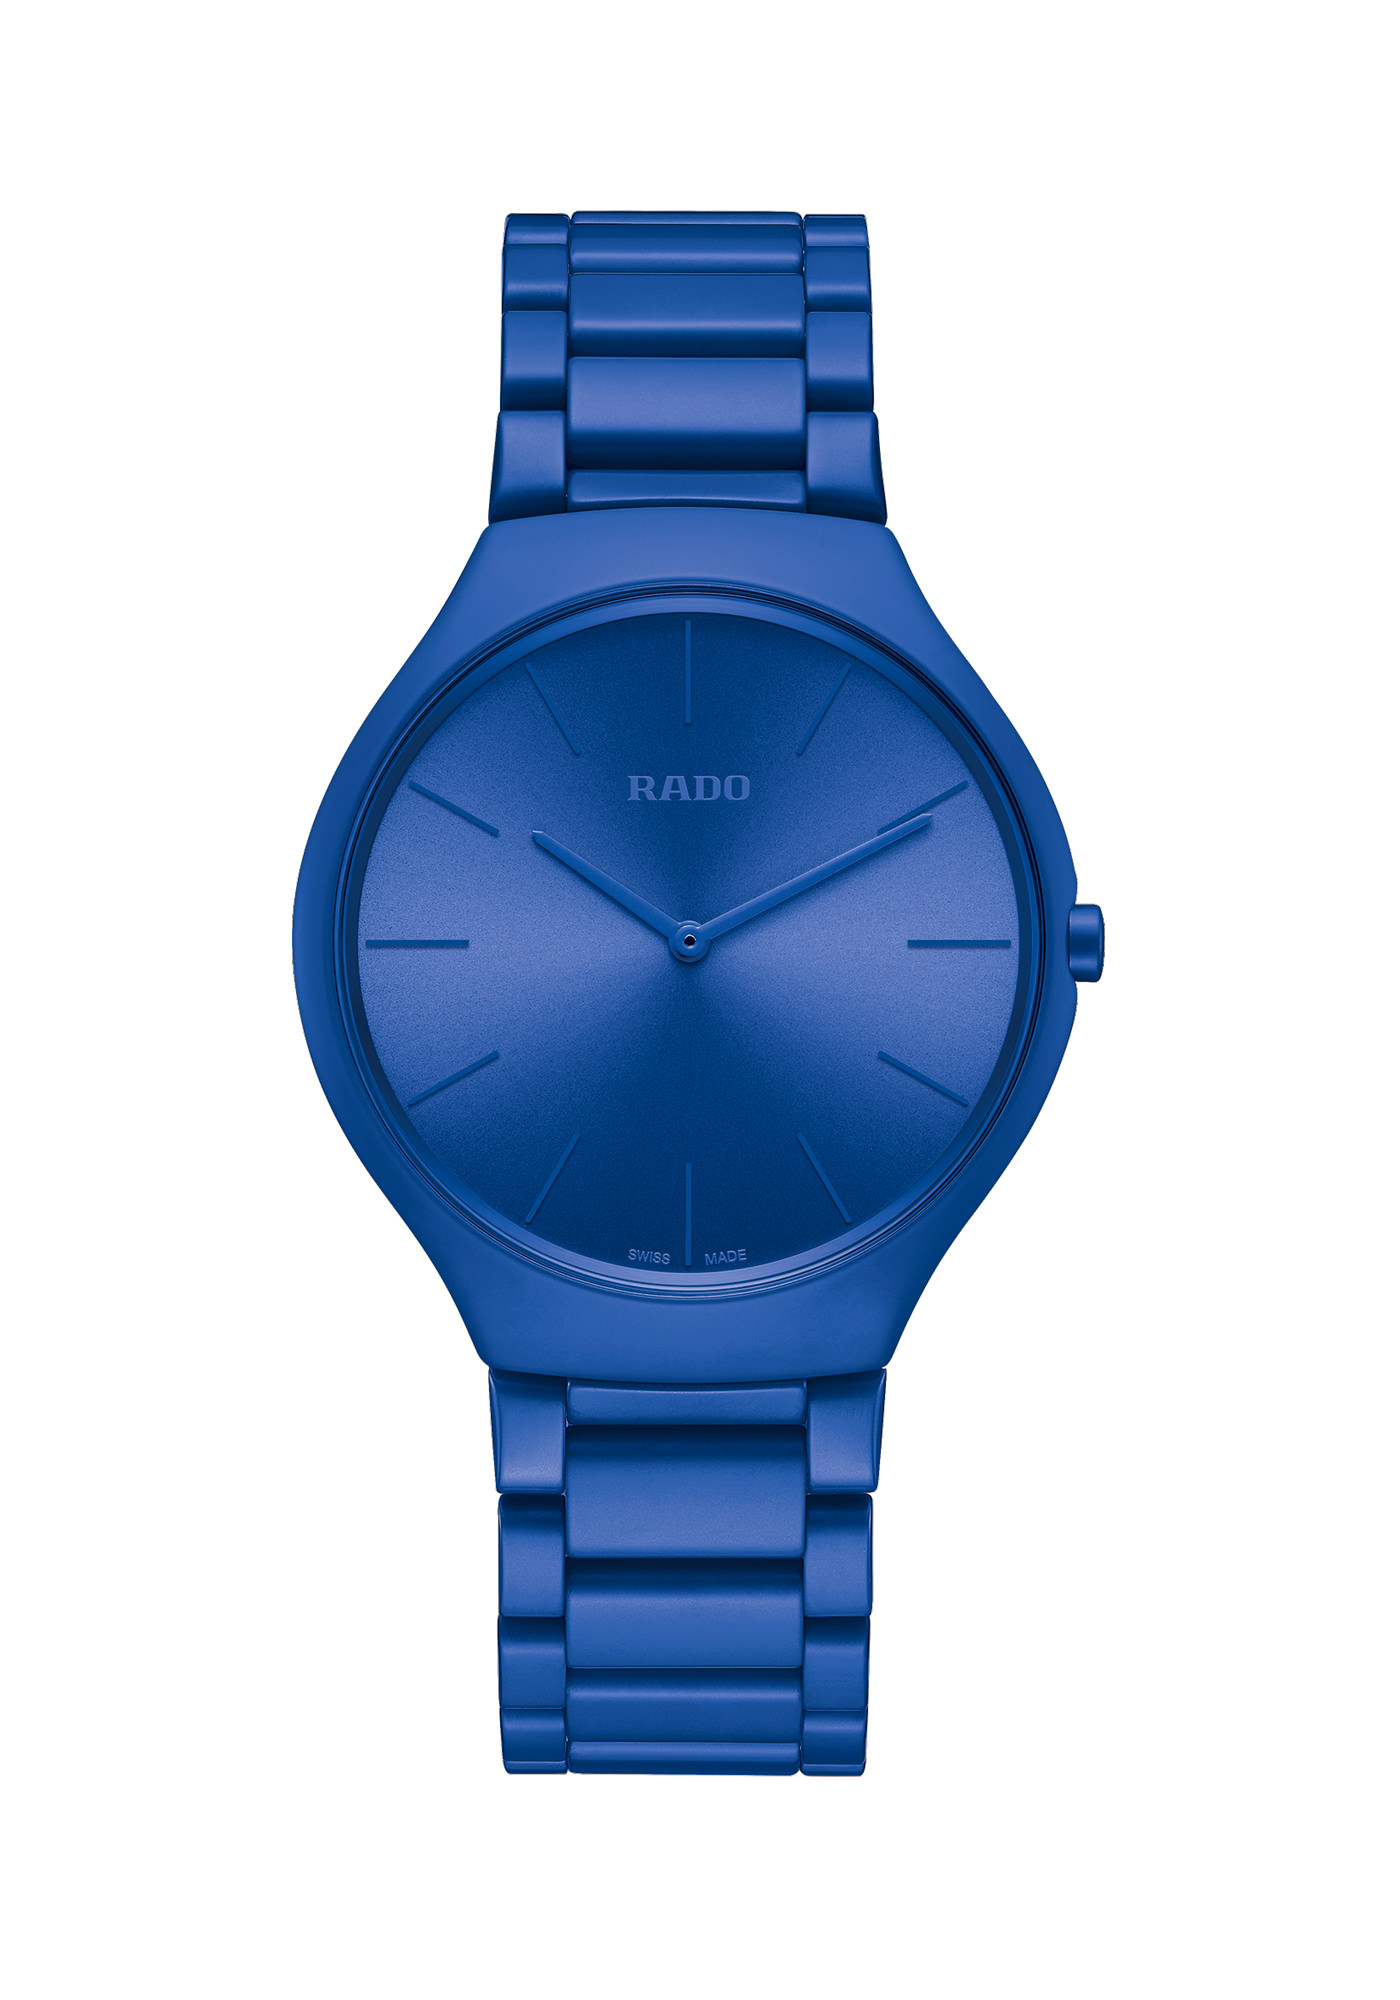 Rado Montres True Thinline Les Couleurs Le Corbusier Spectacular Ultramarine 4320k